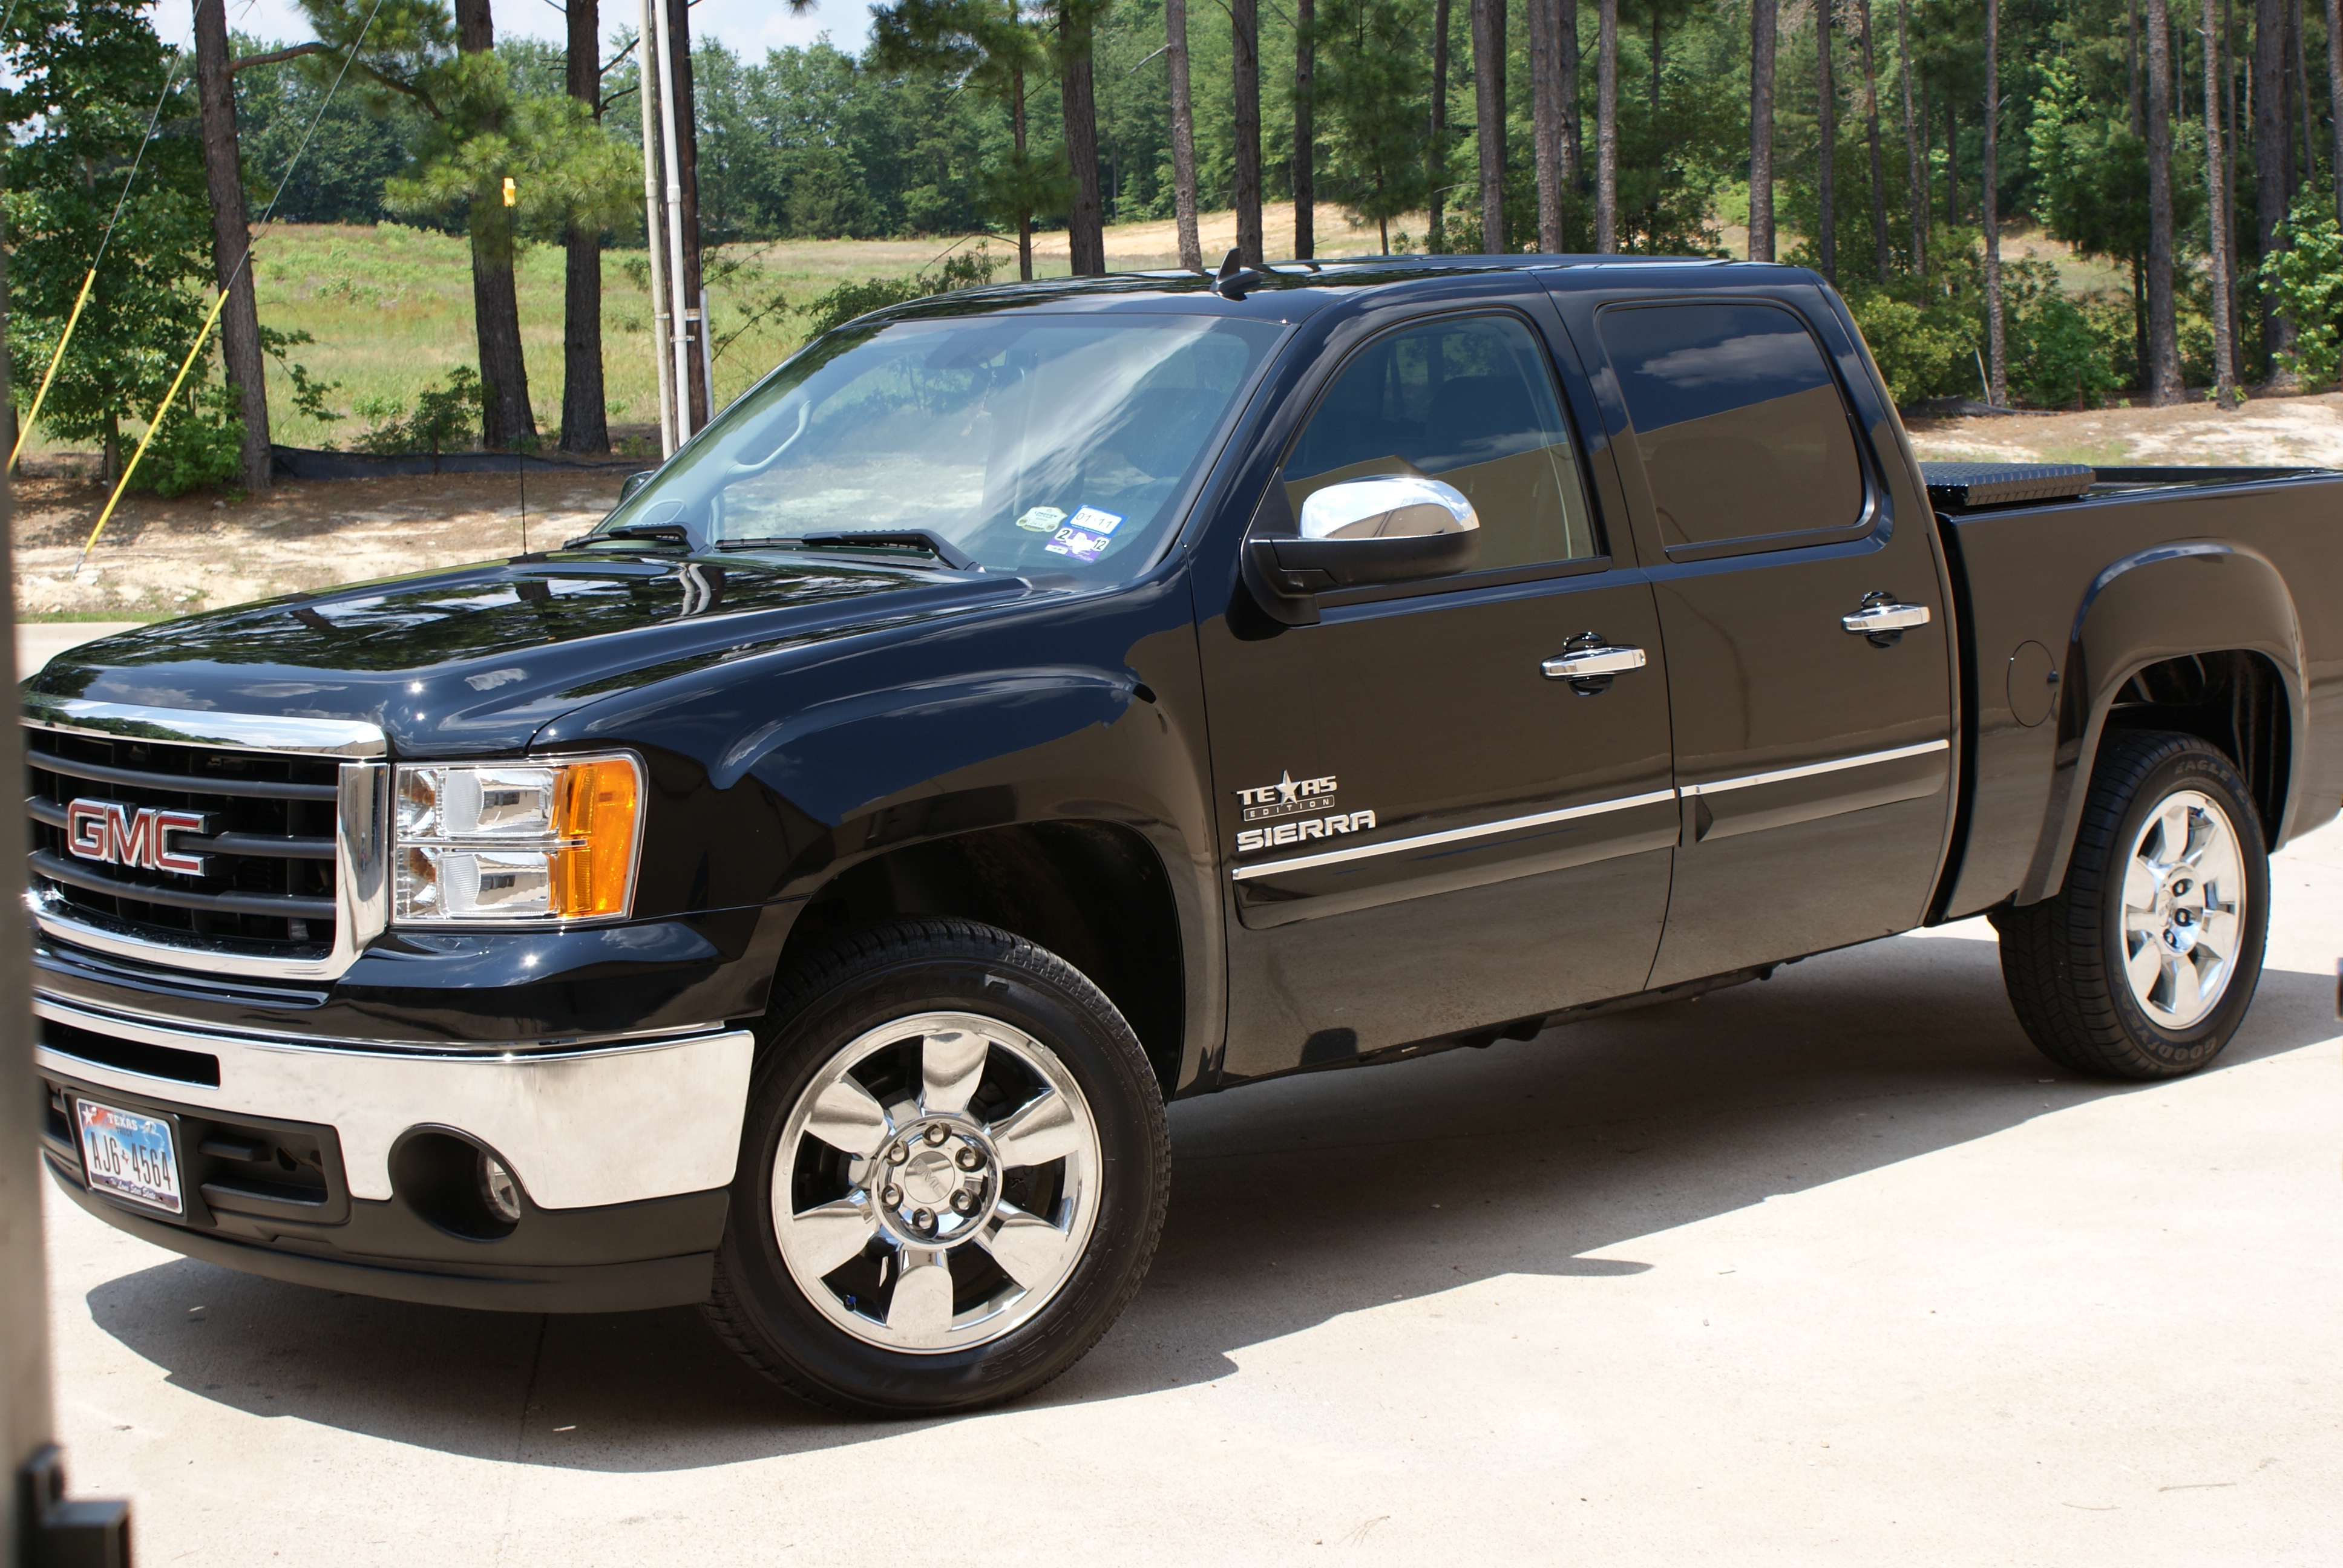 sierra nc used cars in white gmc for sale hickory